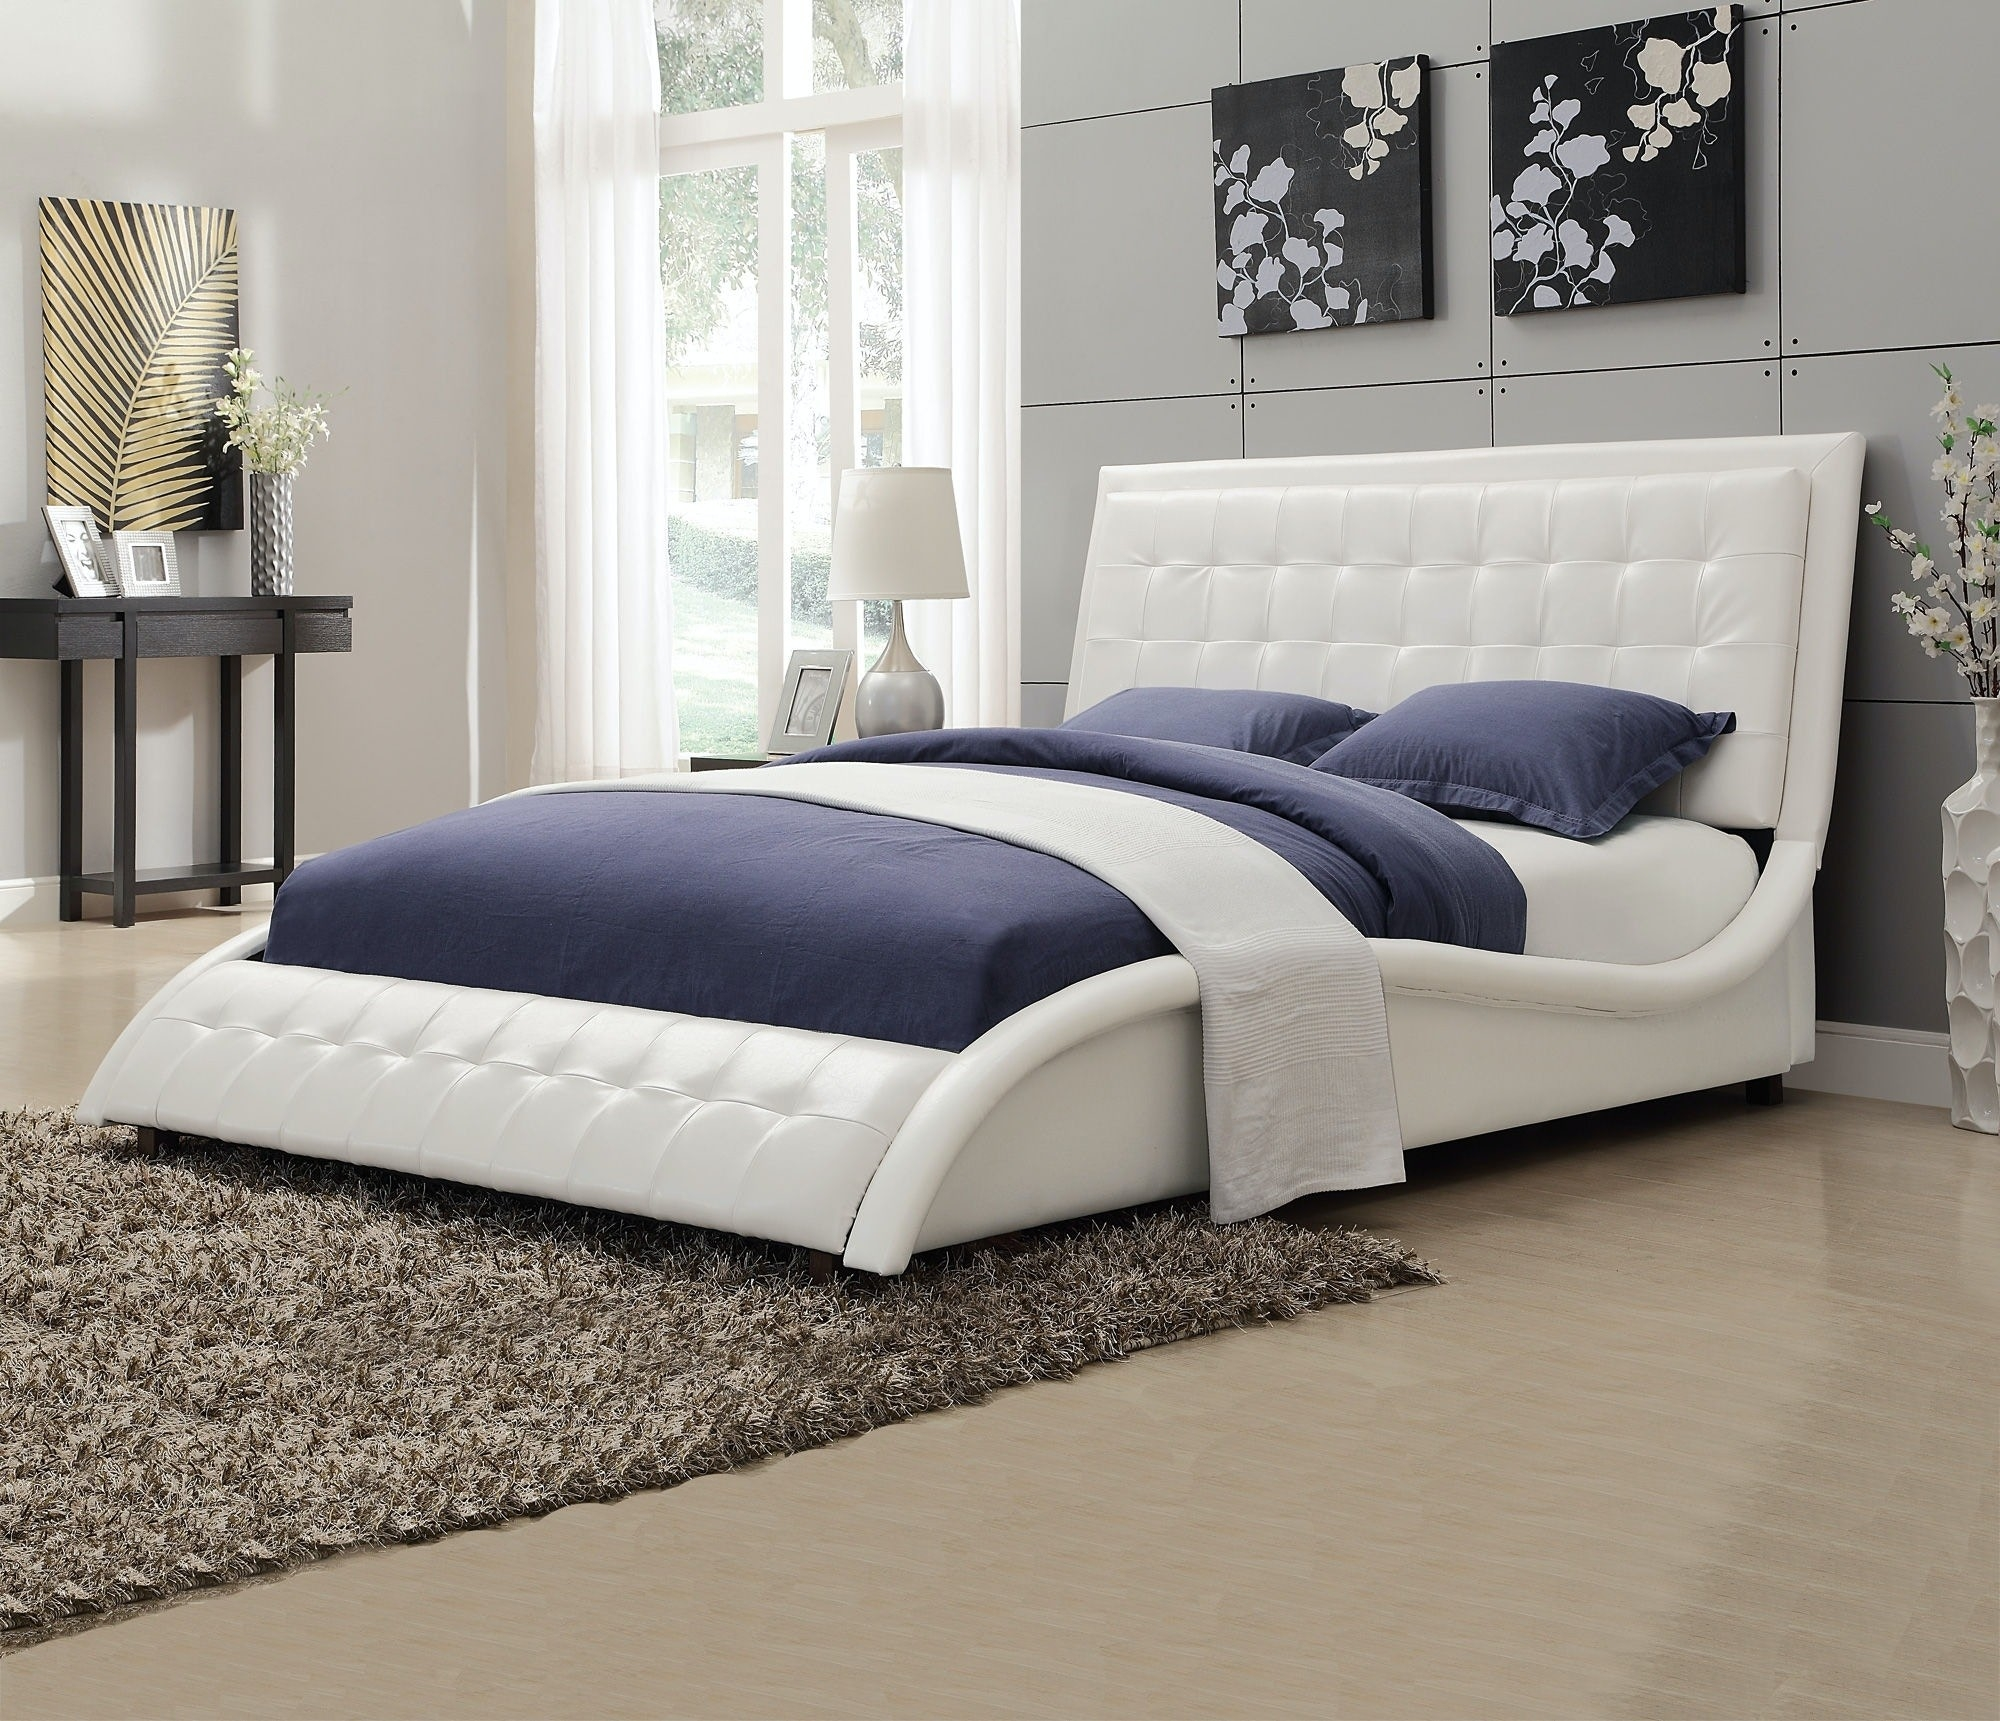 Low Profile Queen Bed Frame Ideas On Foter